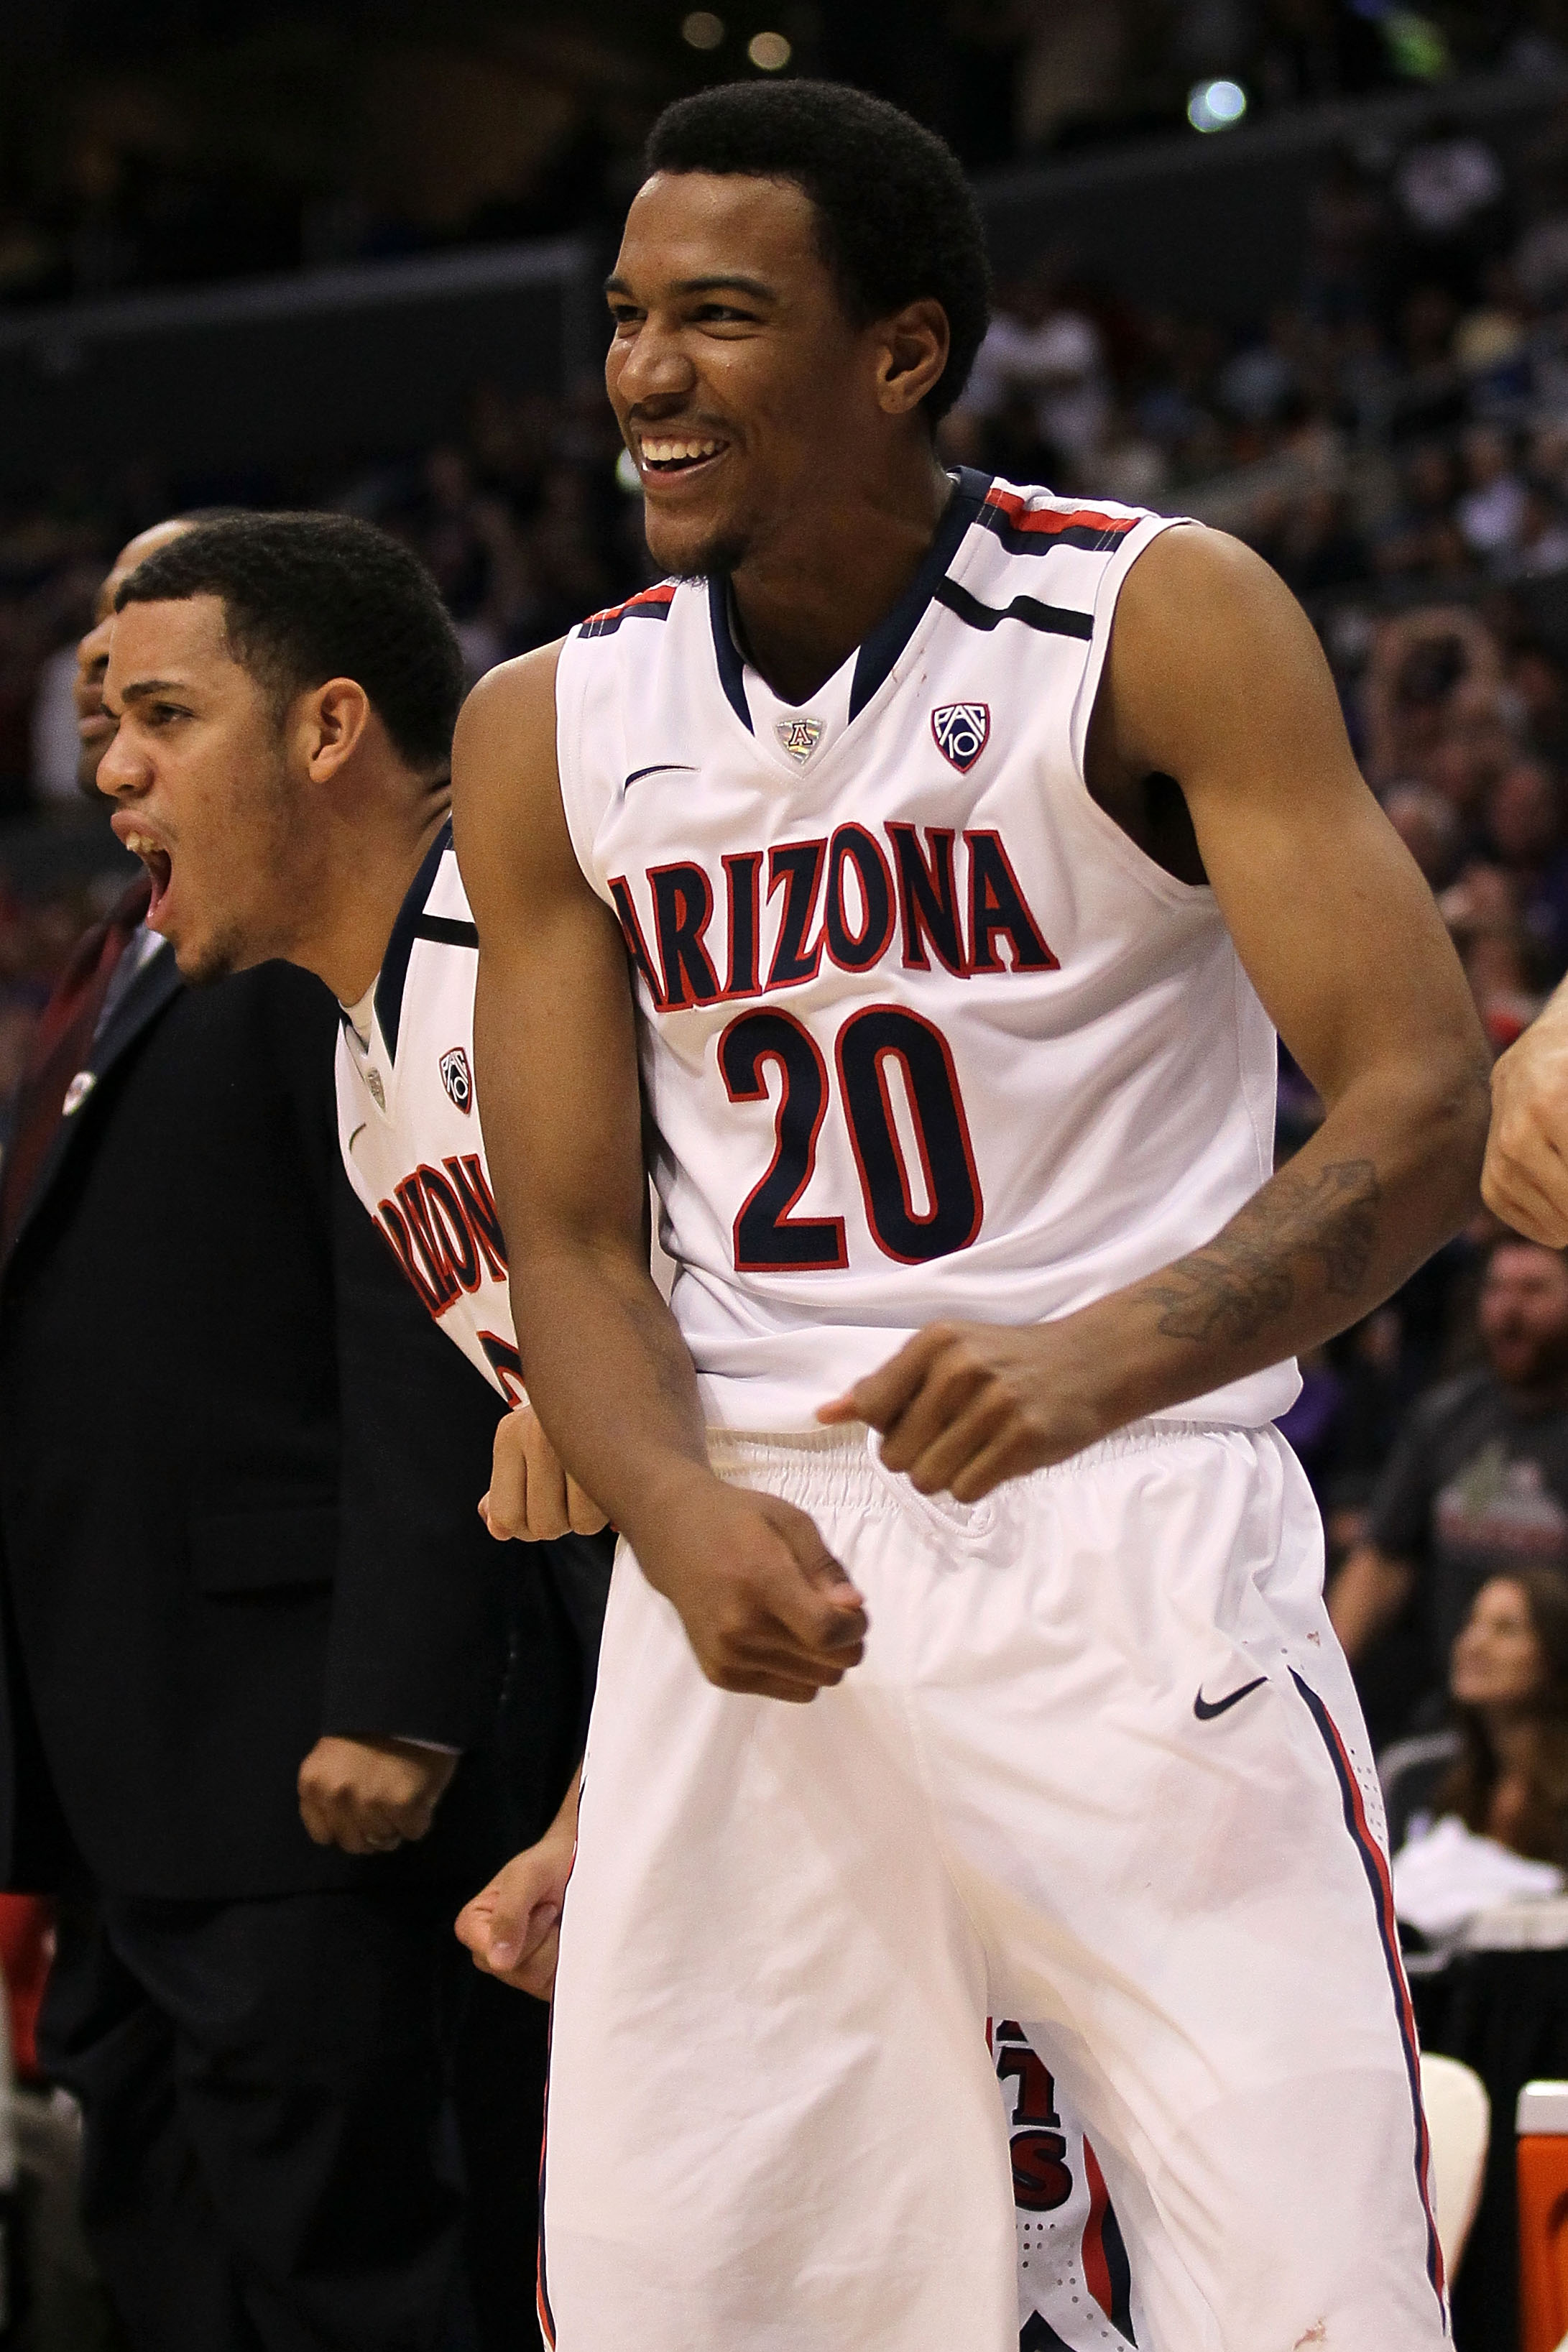 LOS ANGELES, CA - MARCH 12:  Jordin Mayes #20 of the Arizona Wildcats reacts from the bench while taking on the Washington Huskies in the championship game of the 2011 Pacific Life Pac-10 Men's Basketball Tournament at Staples Center on March 12, 2011 in